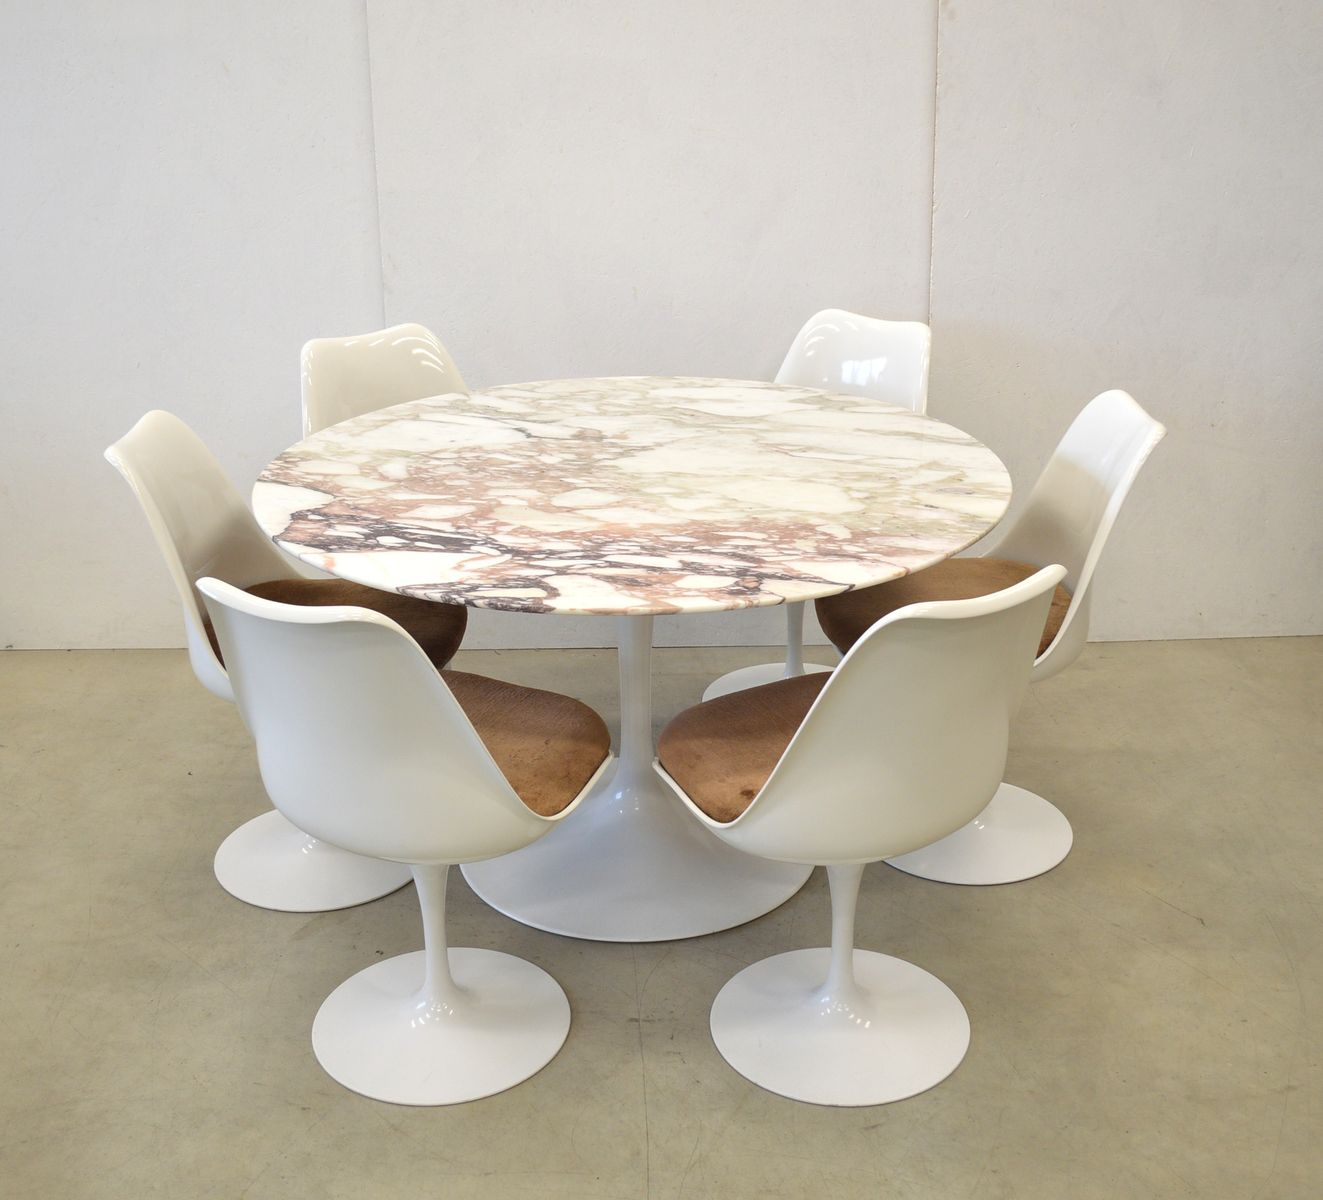 tulip table and chairs uk adirondack kits marble dining 6 by eero saarinen for